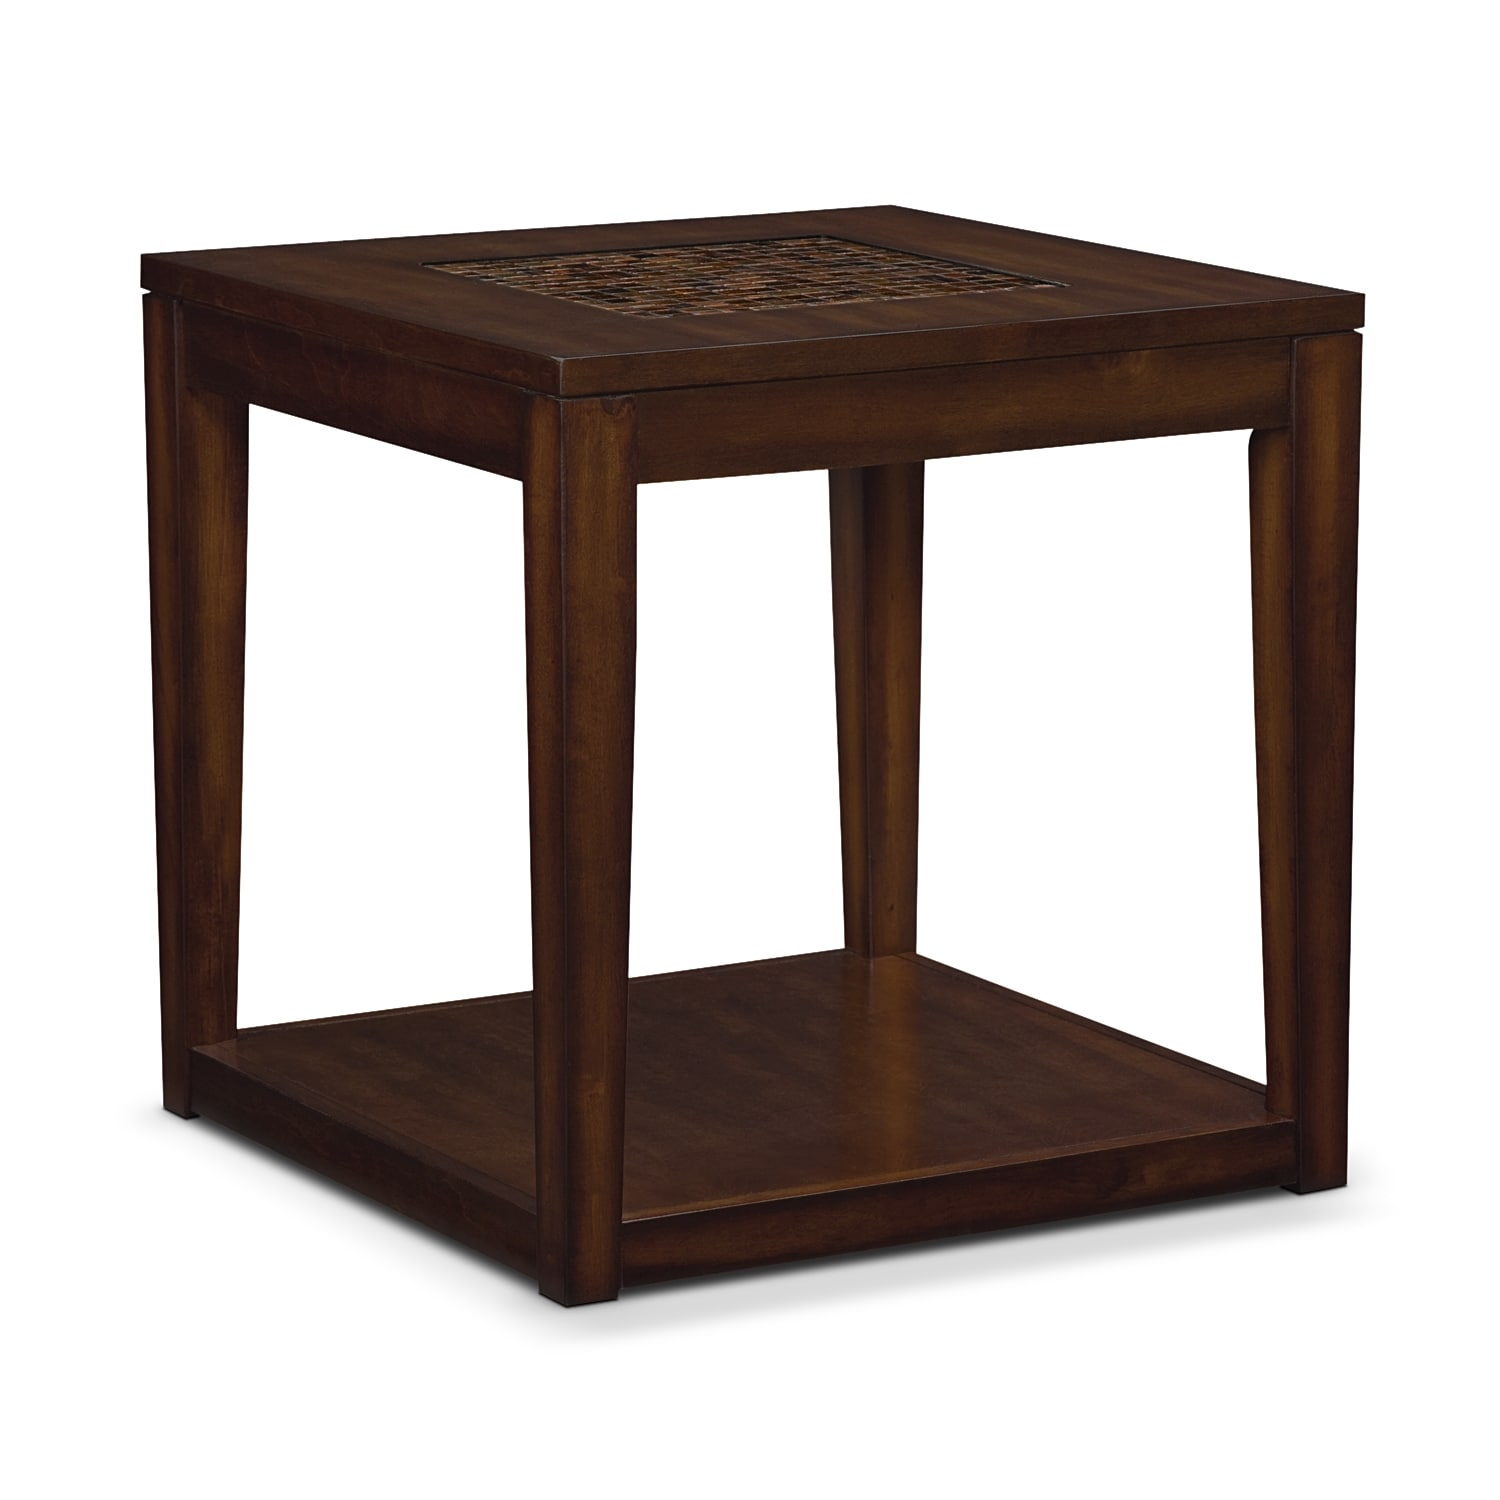 Carson Occasional Tables End Table Value City Furniture